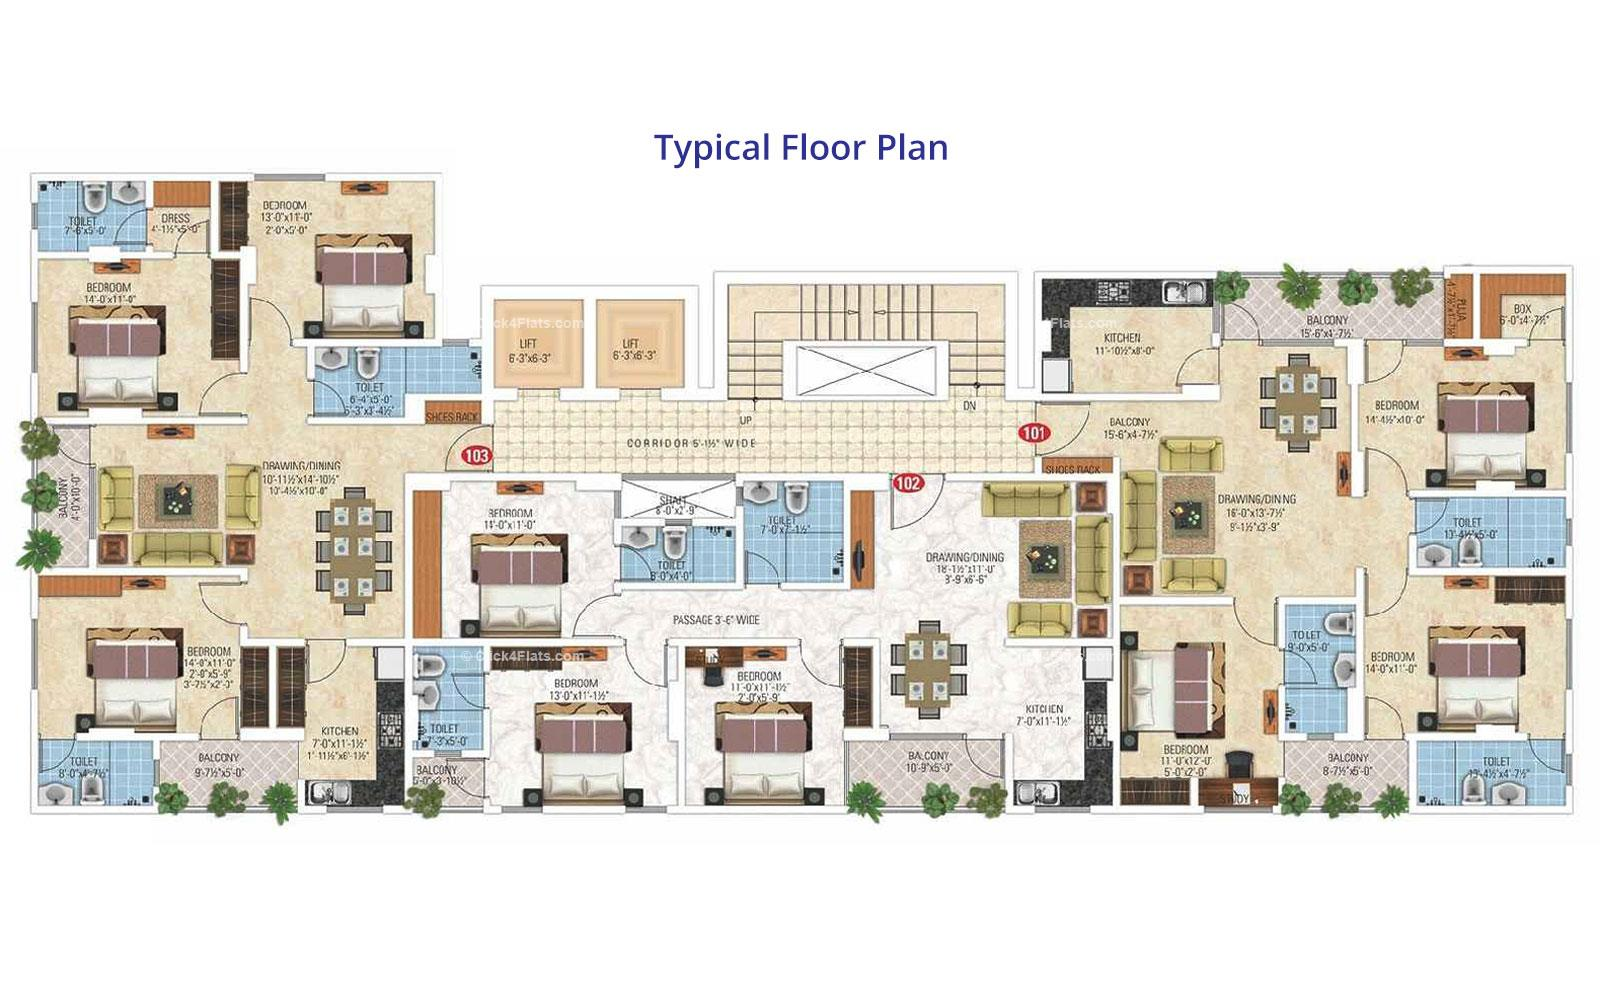 Royal Ornate Typical Floor Plan